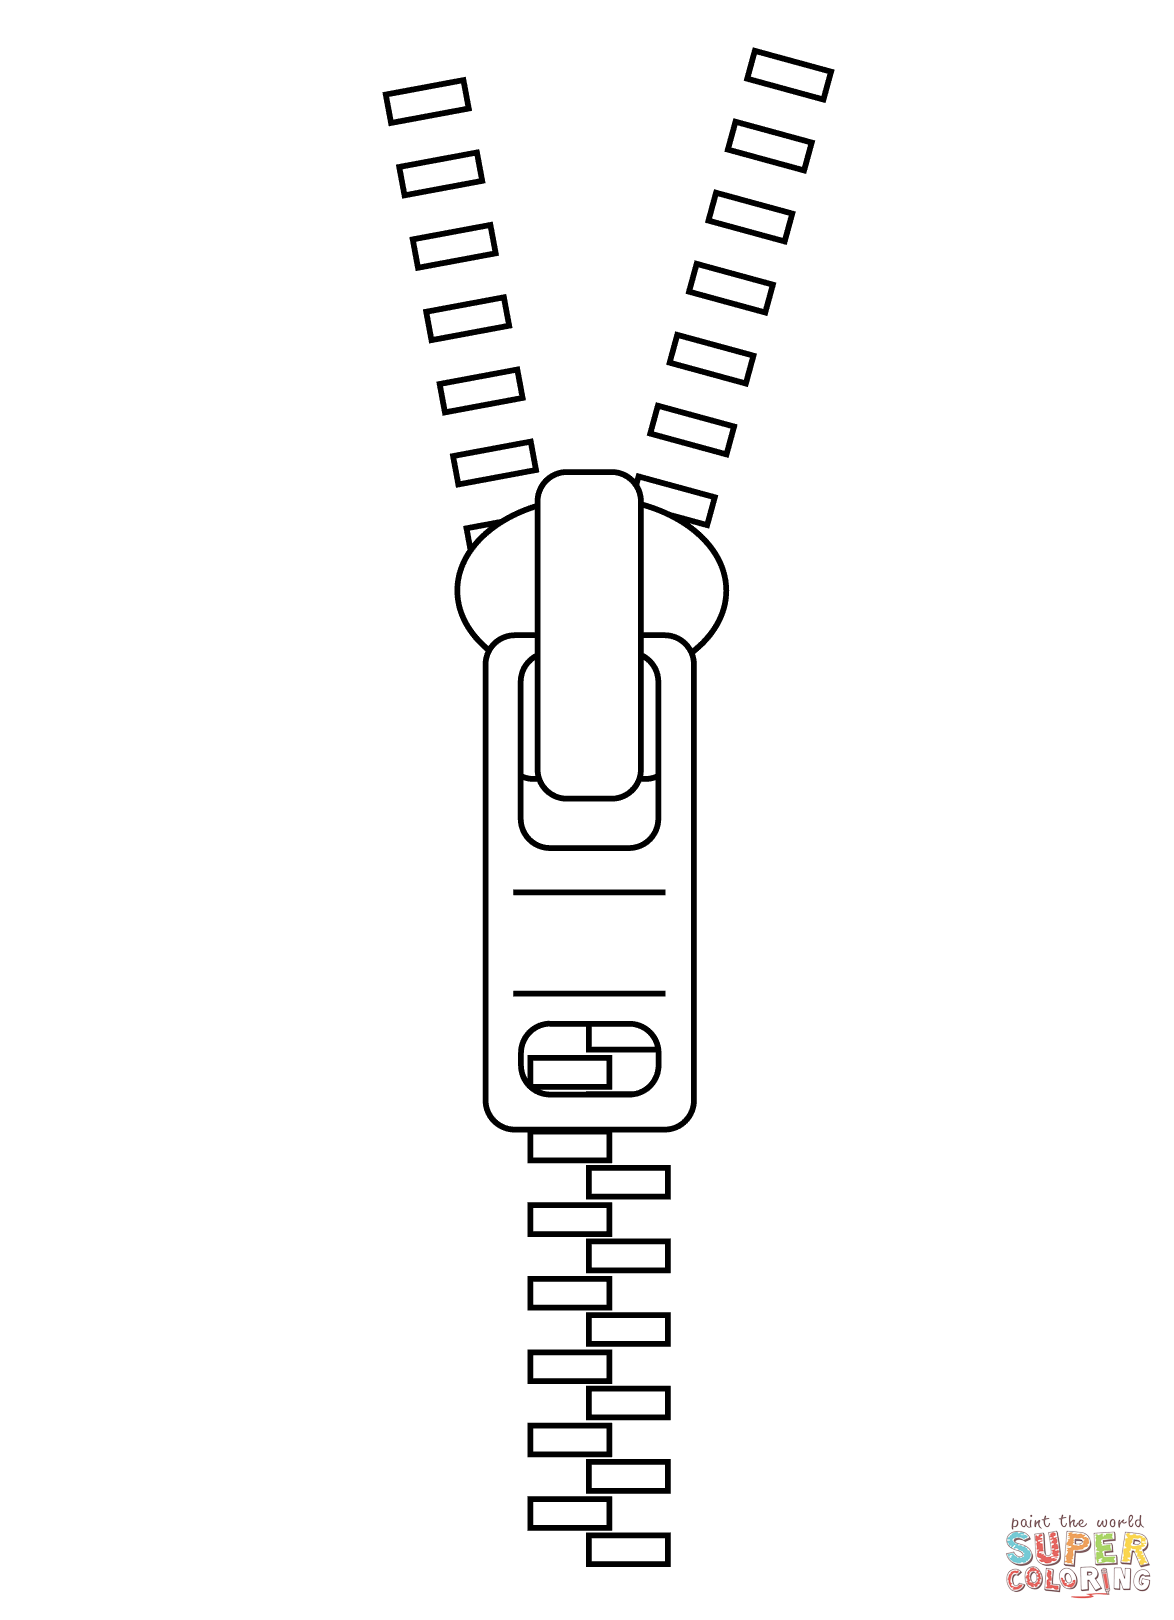 Click the zipper coloring pages to view printable version or color it online compatible with ipad and android tablets